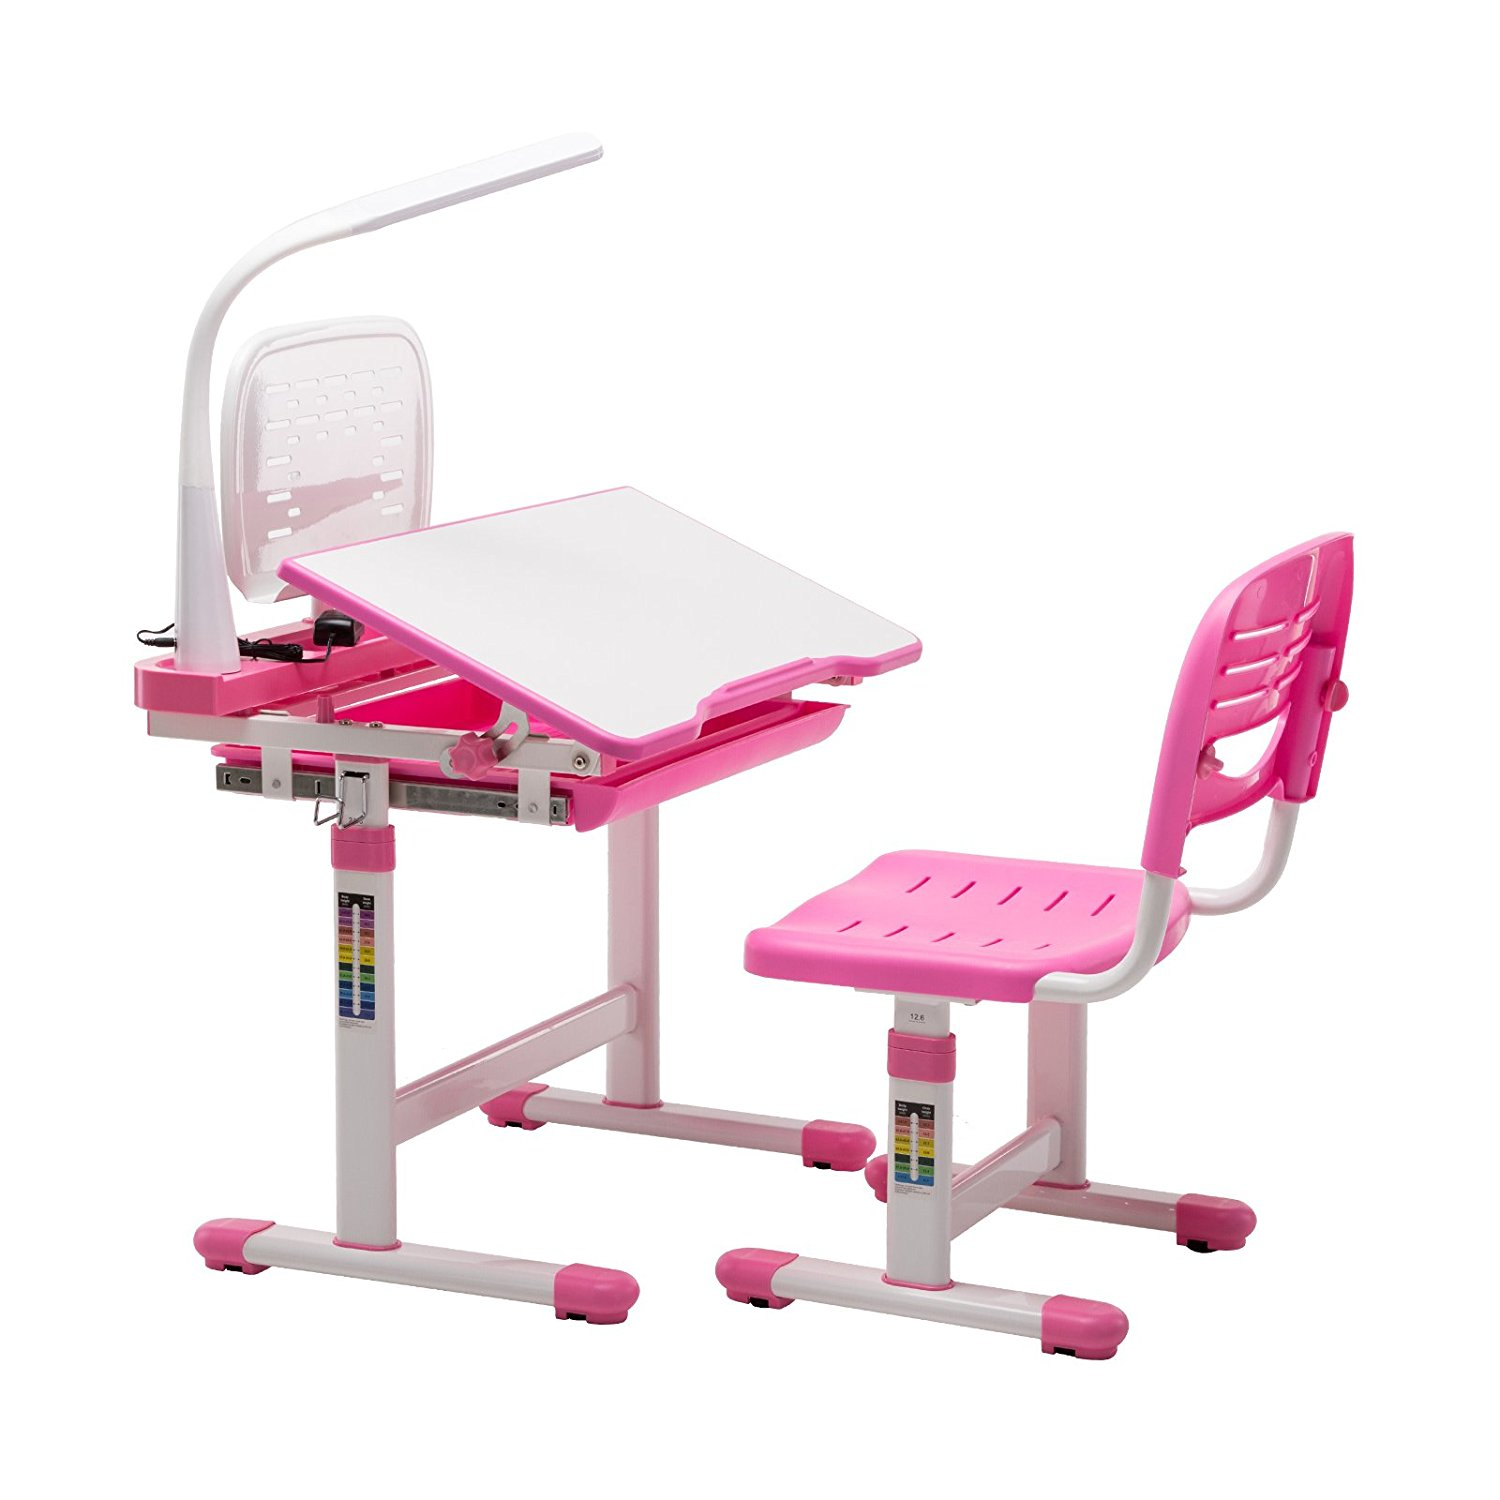 Mecor Multifunctional Children's Desk and Chair Set Adjustable Kids Work Station with Lamp & Storage & Bookstand Pink